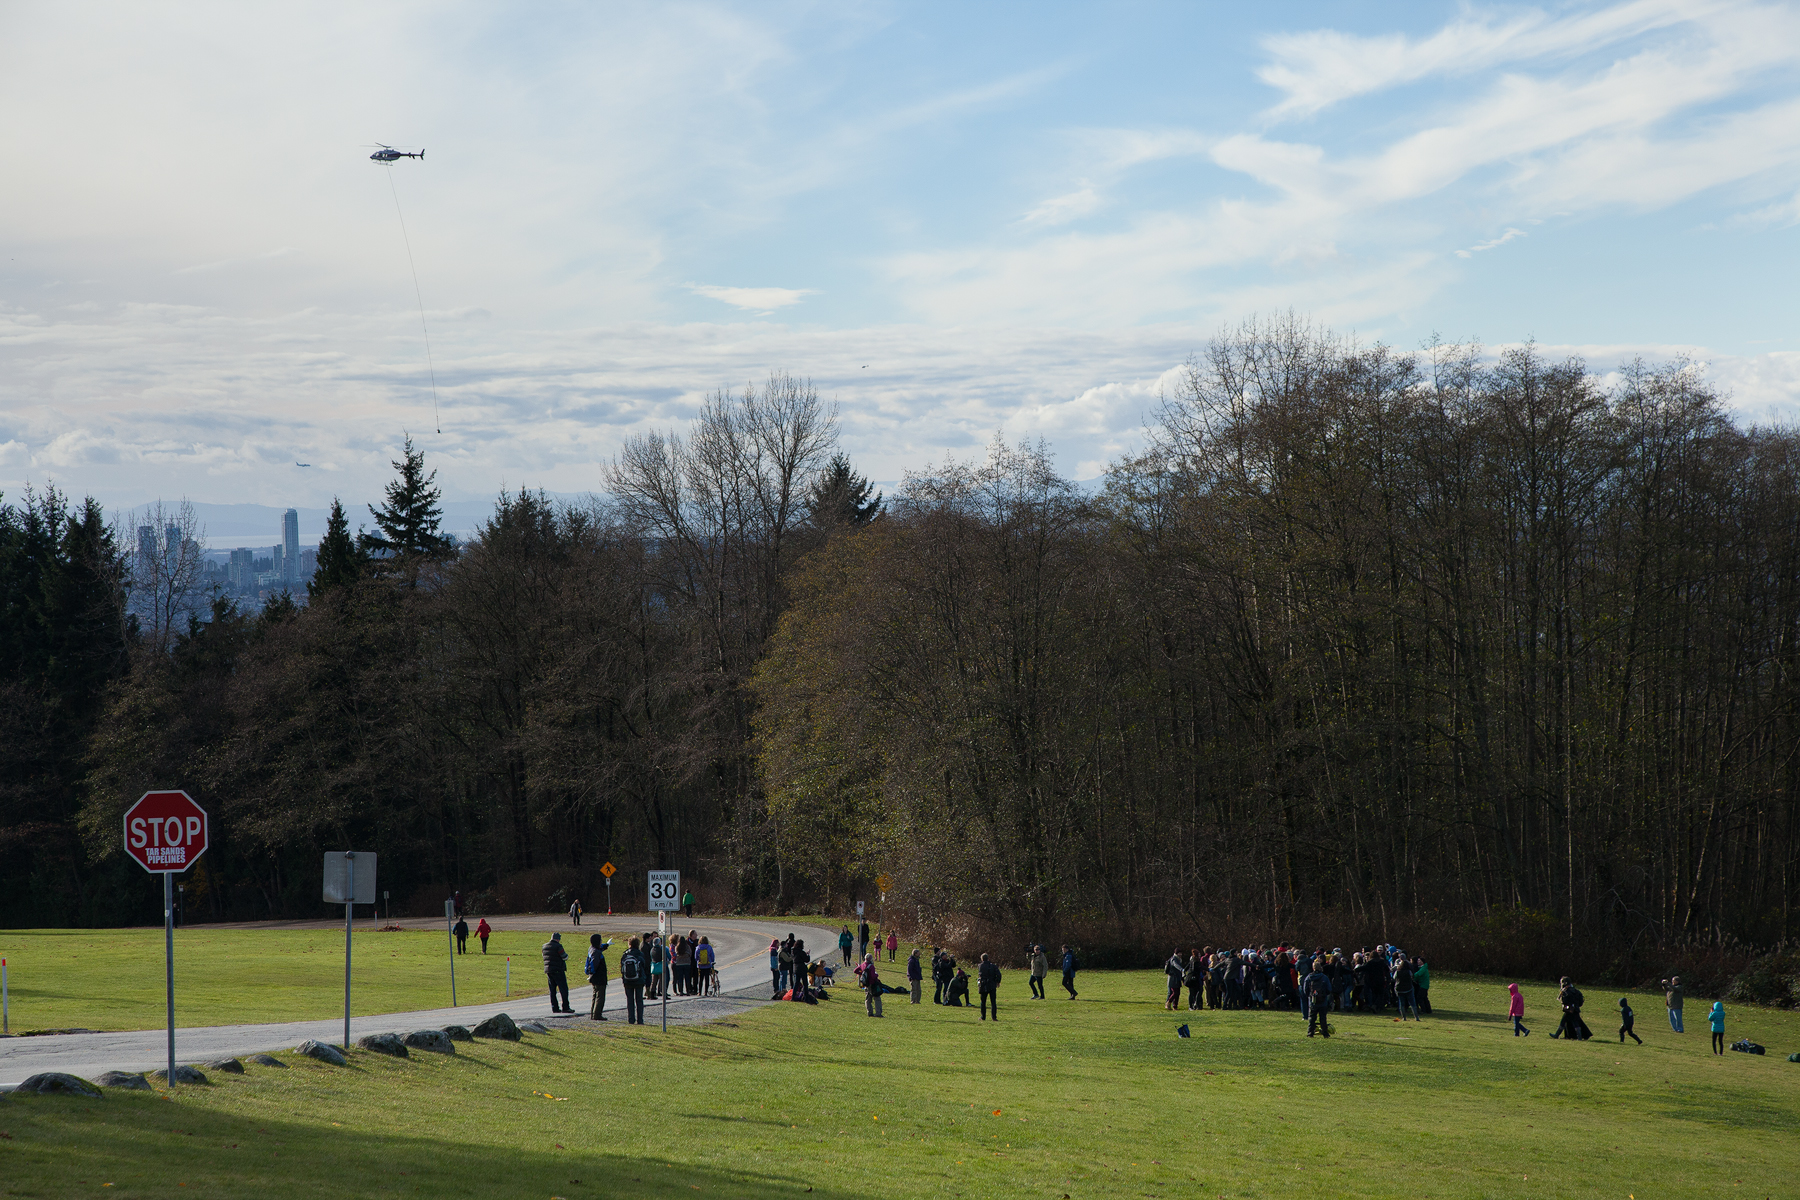 Protestors dance in joy as Kinder Morgan runs out of time to survey and leaves the mountain. The Kinder Morgan Helicopter flies above, bringing equipment from the mountain, back to their facilities.  The story is not over though. No final decisions have been made.